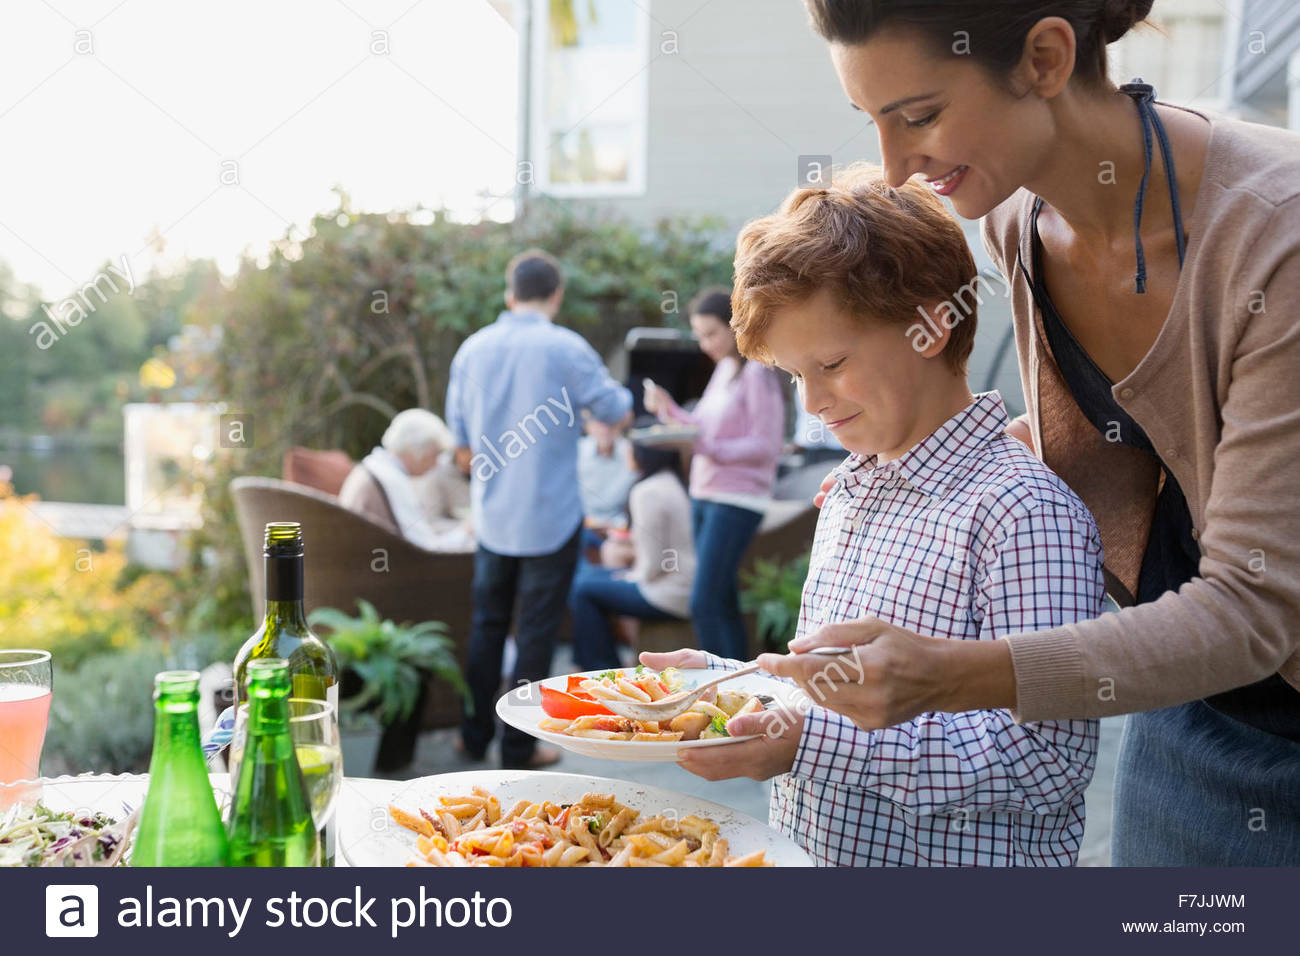 Mother helping serve son food at buffet patio - Stock Image